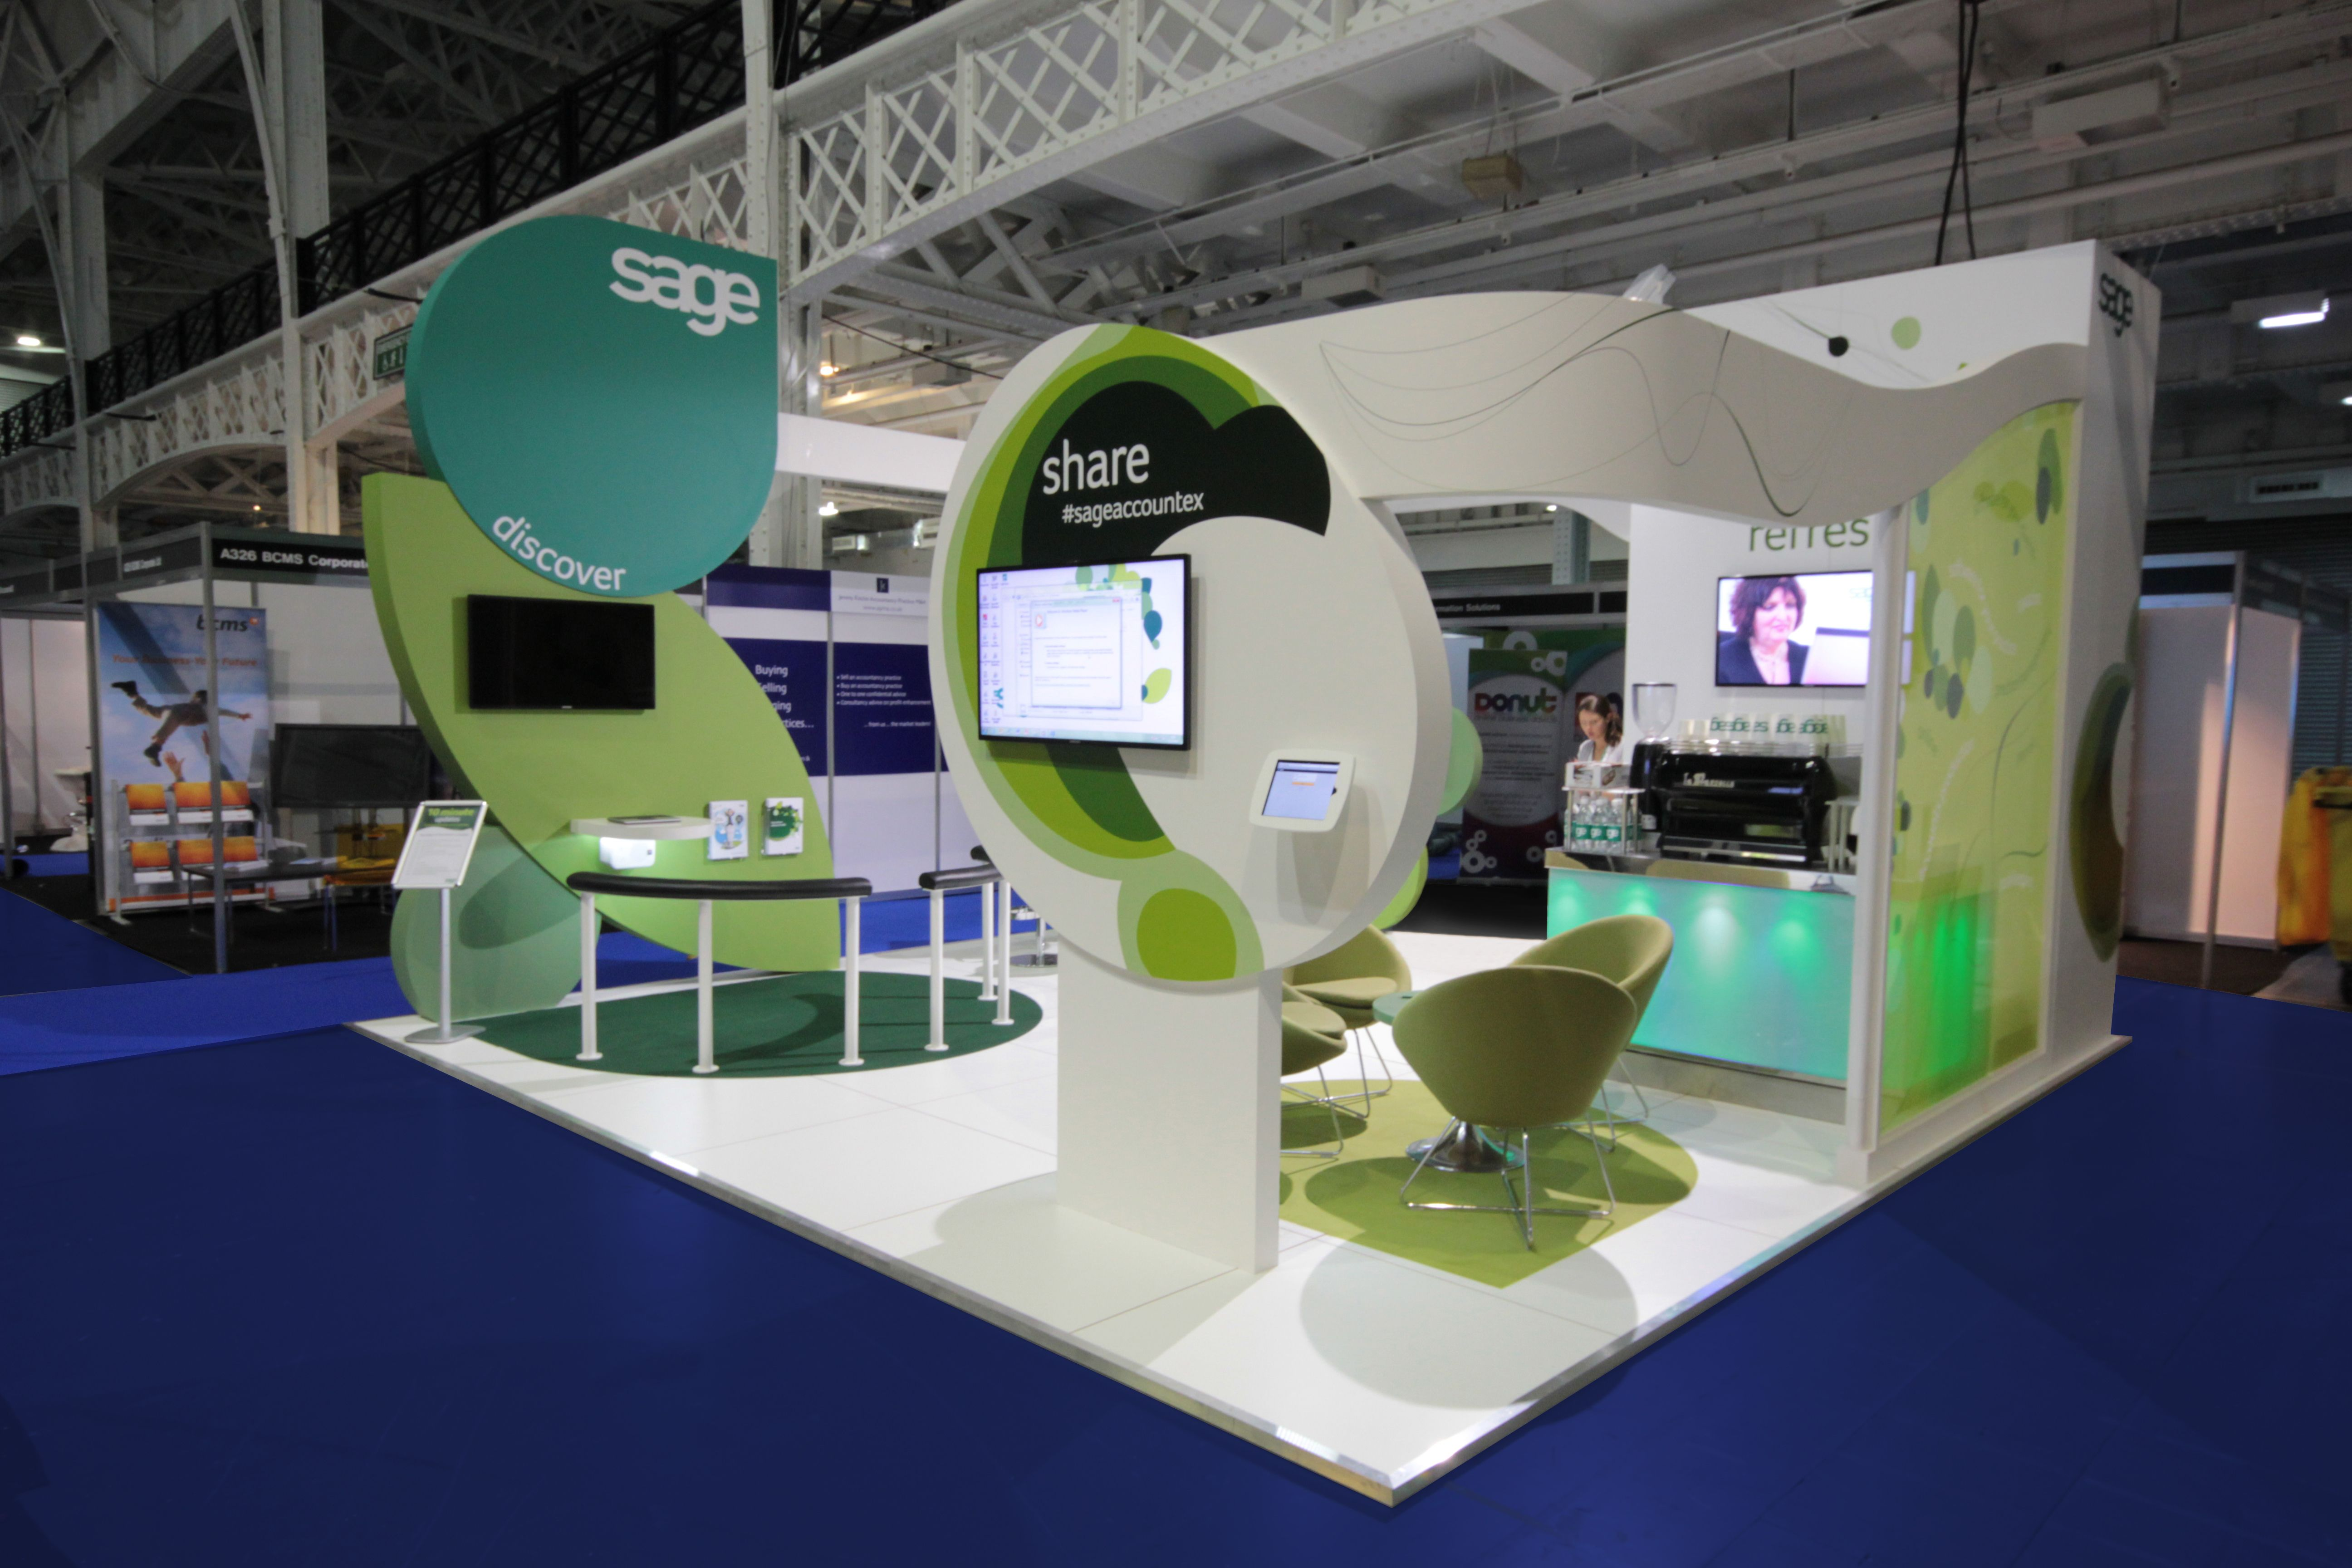 Modern Exhibition Stand Design : Exhibit stand green modern ideas pinterest